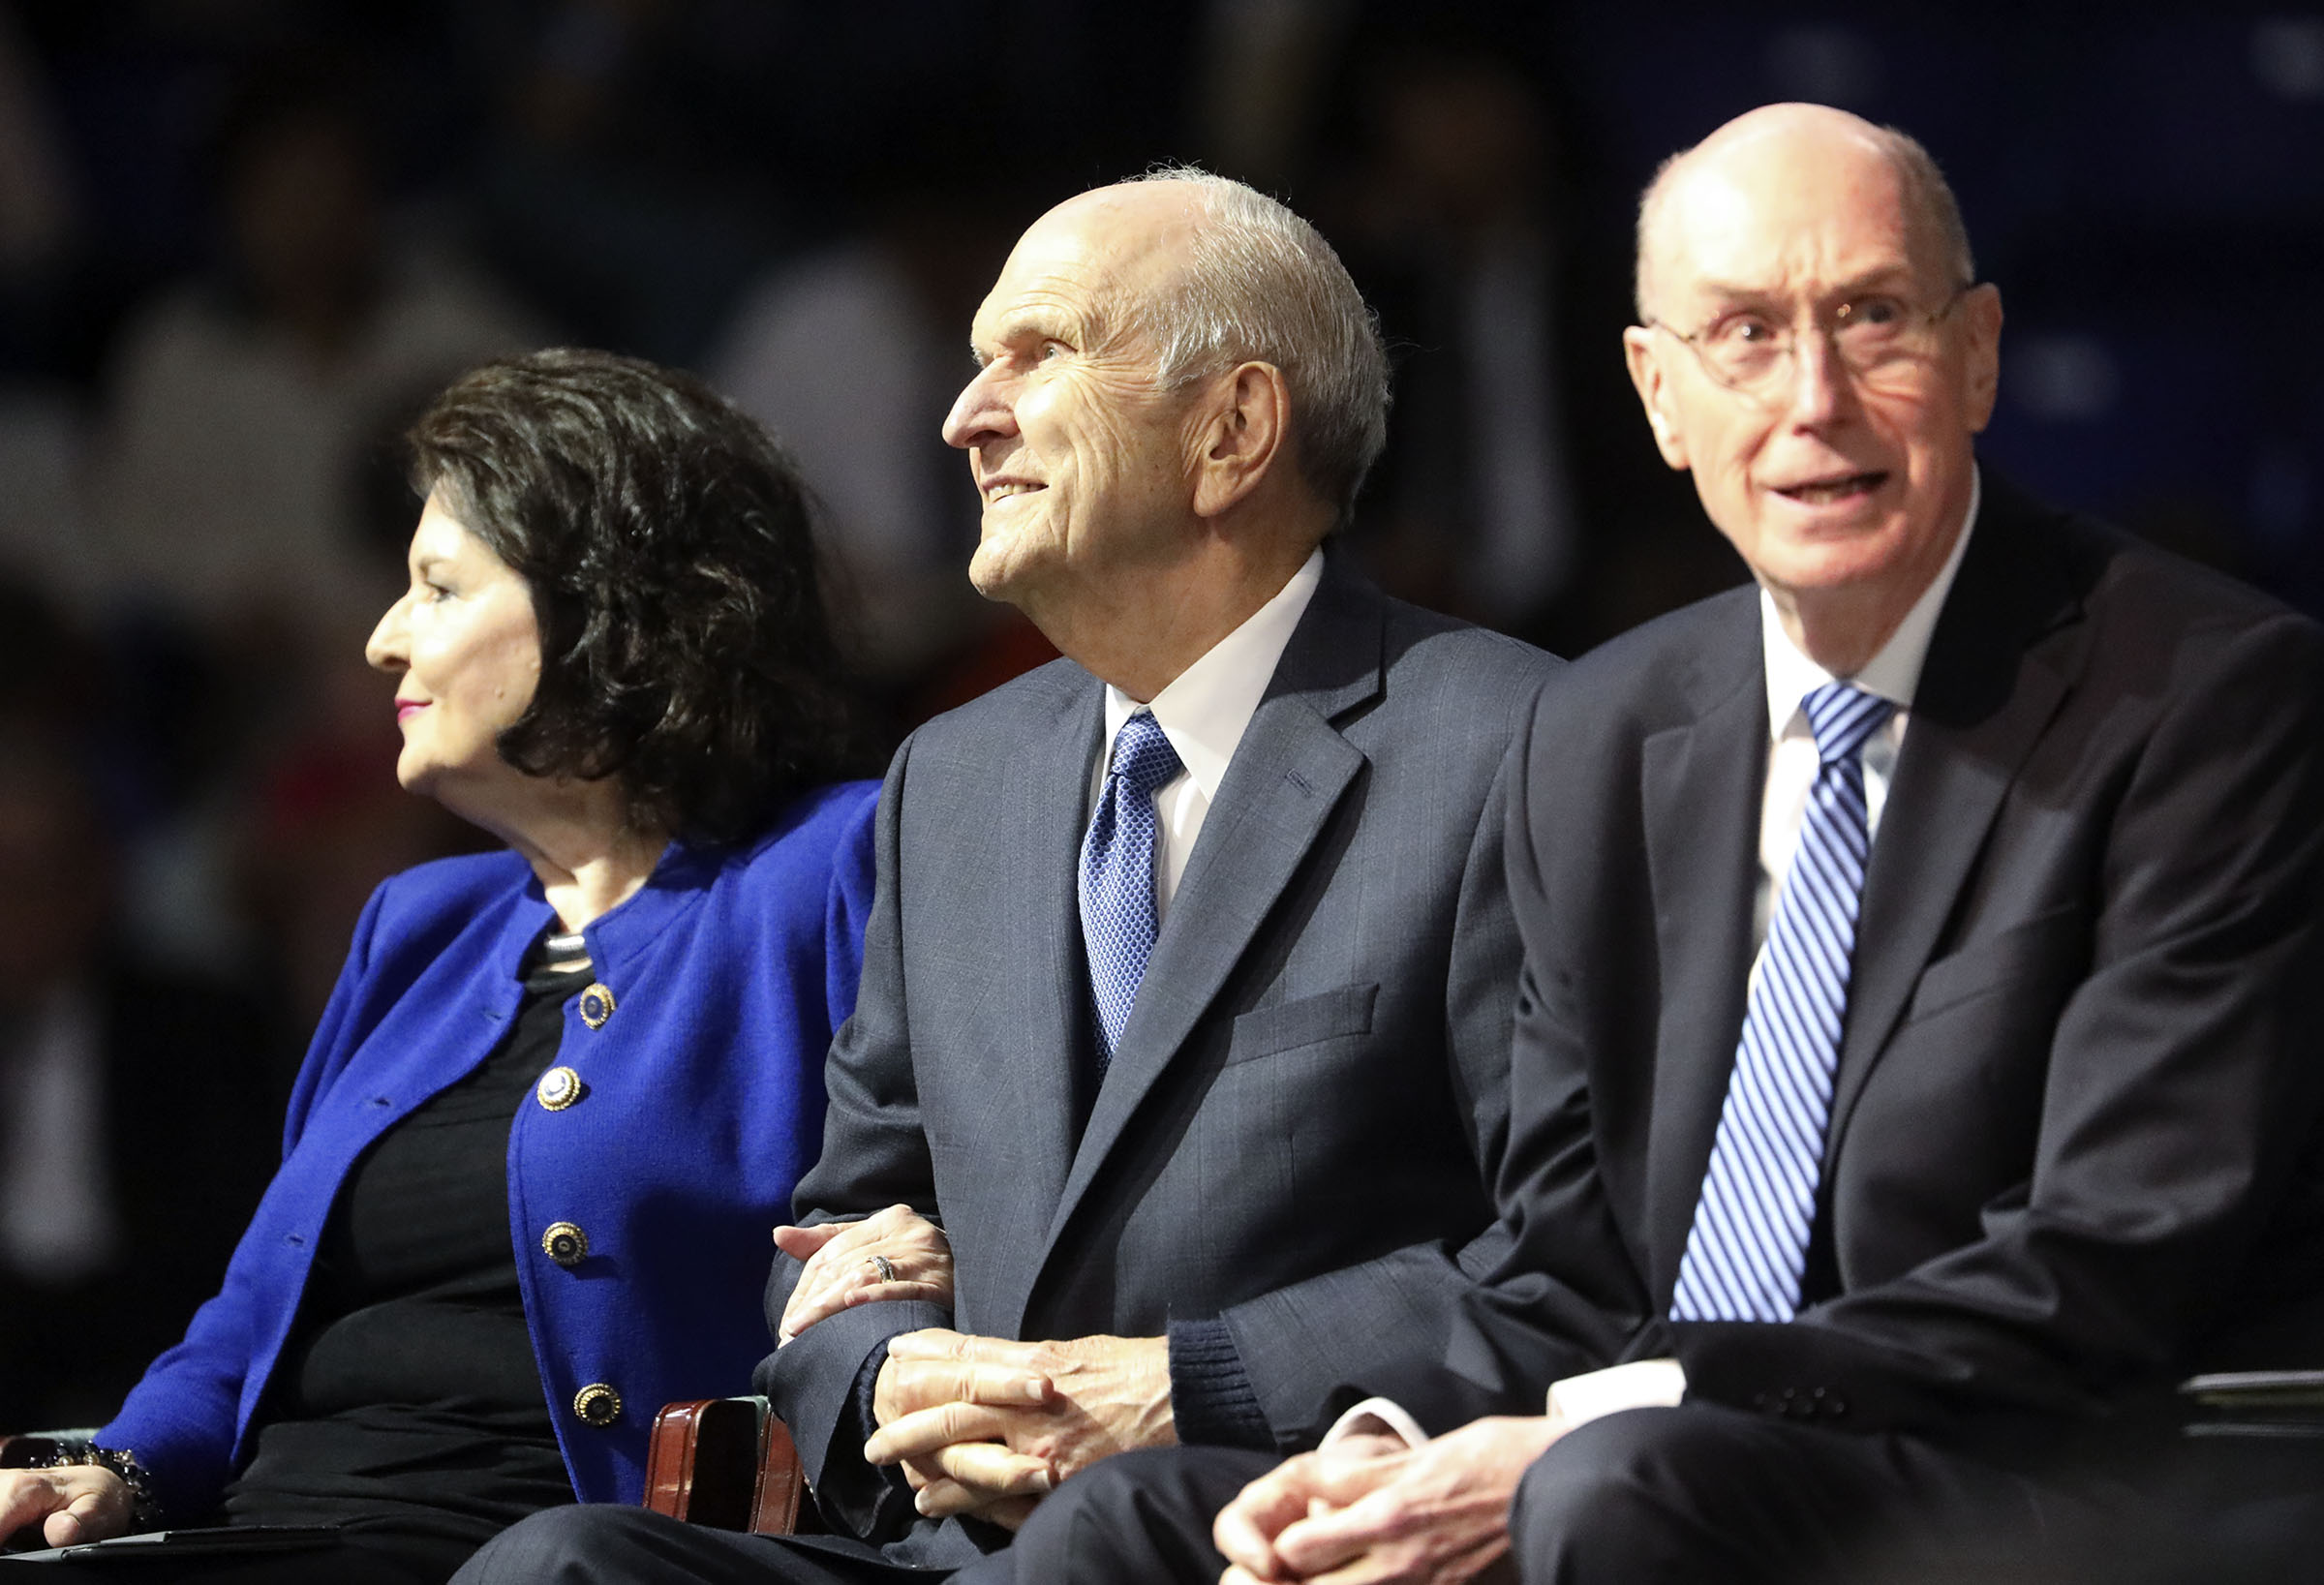 Sister Wendy Nelson, President Russell M. Nelson of The Church of Jesus Christ of Latter-day Saints and President Henry B. Eyring, second counselor in the First Presidency, look at the crowd before speaking at the Langley Events Center in Langley, British Columbia, on Sunday, Sept. 16, 2018.